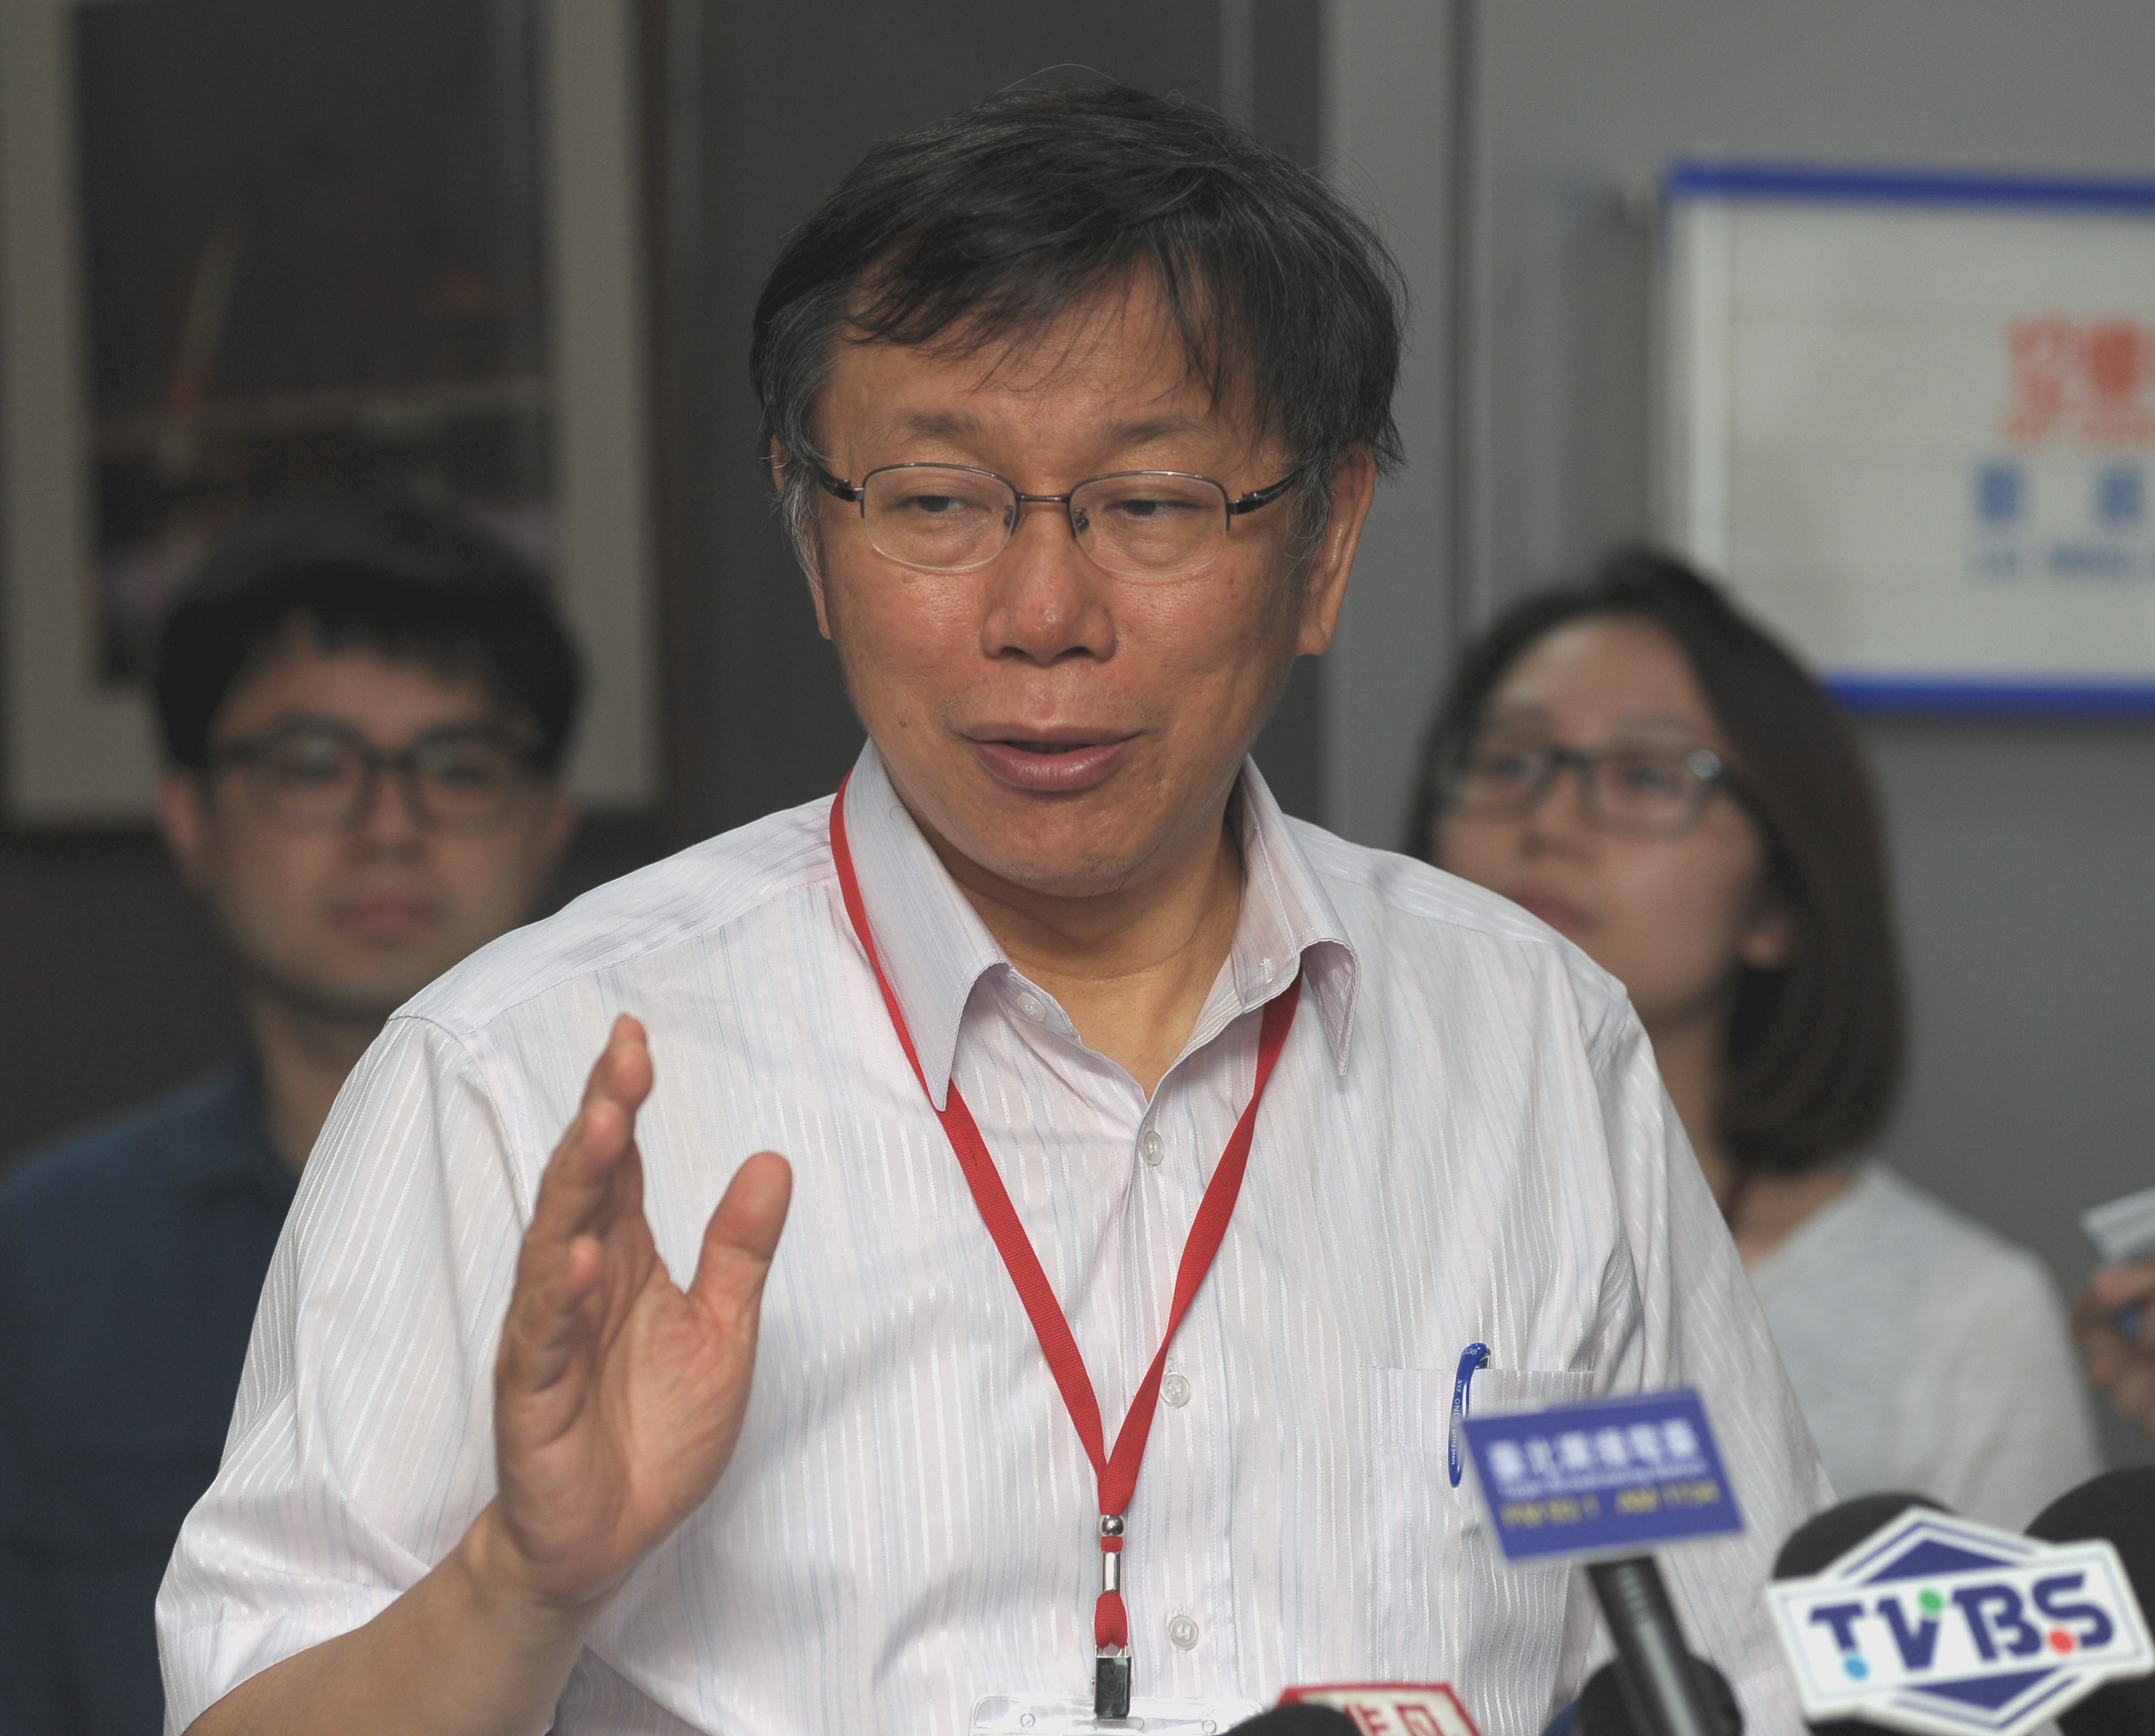 Ko Wen-je questioned by Keelung City Councilor on bus terminal